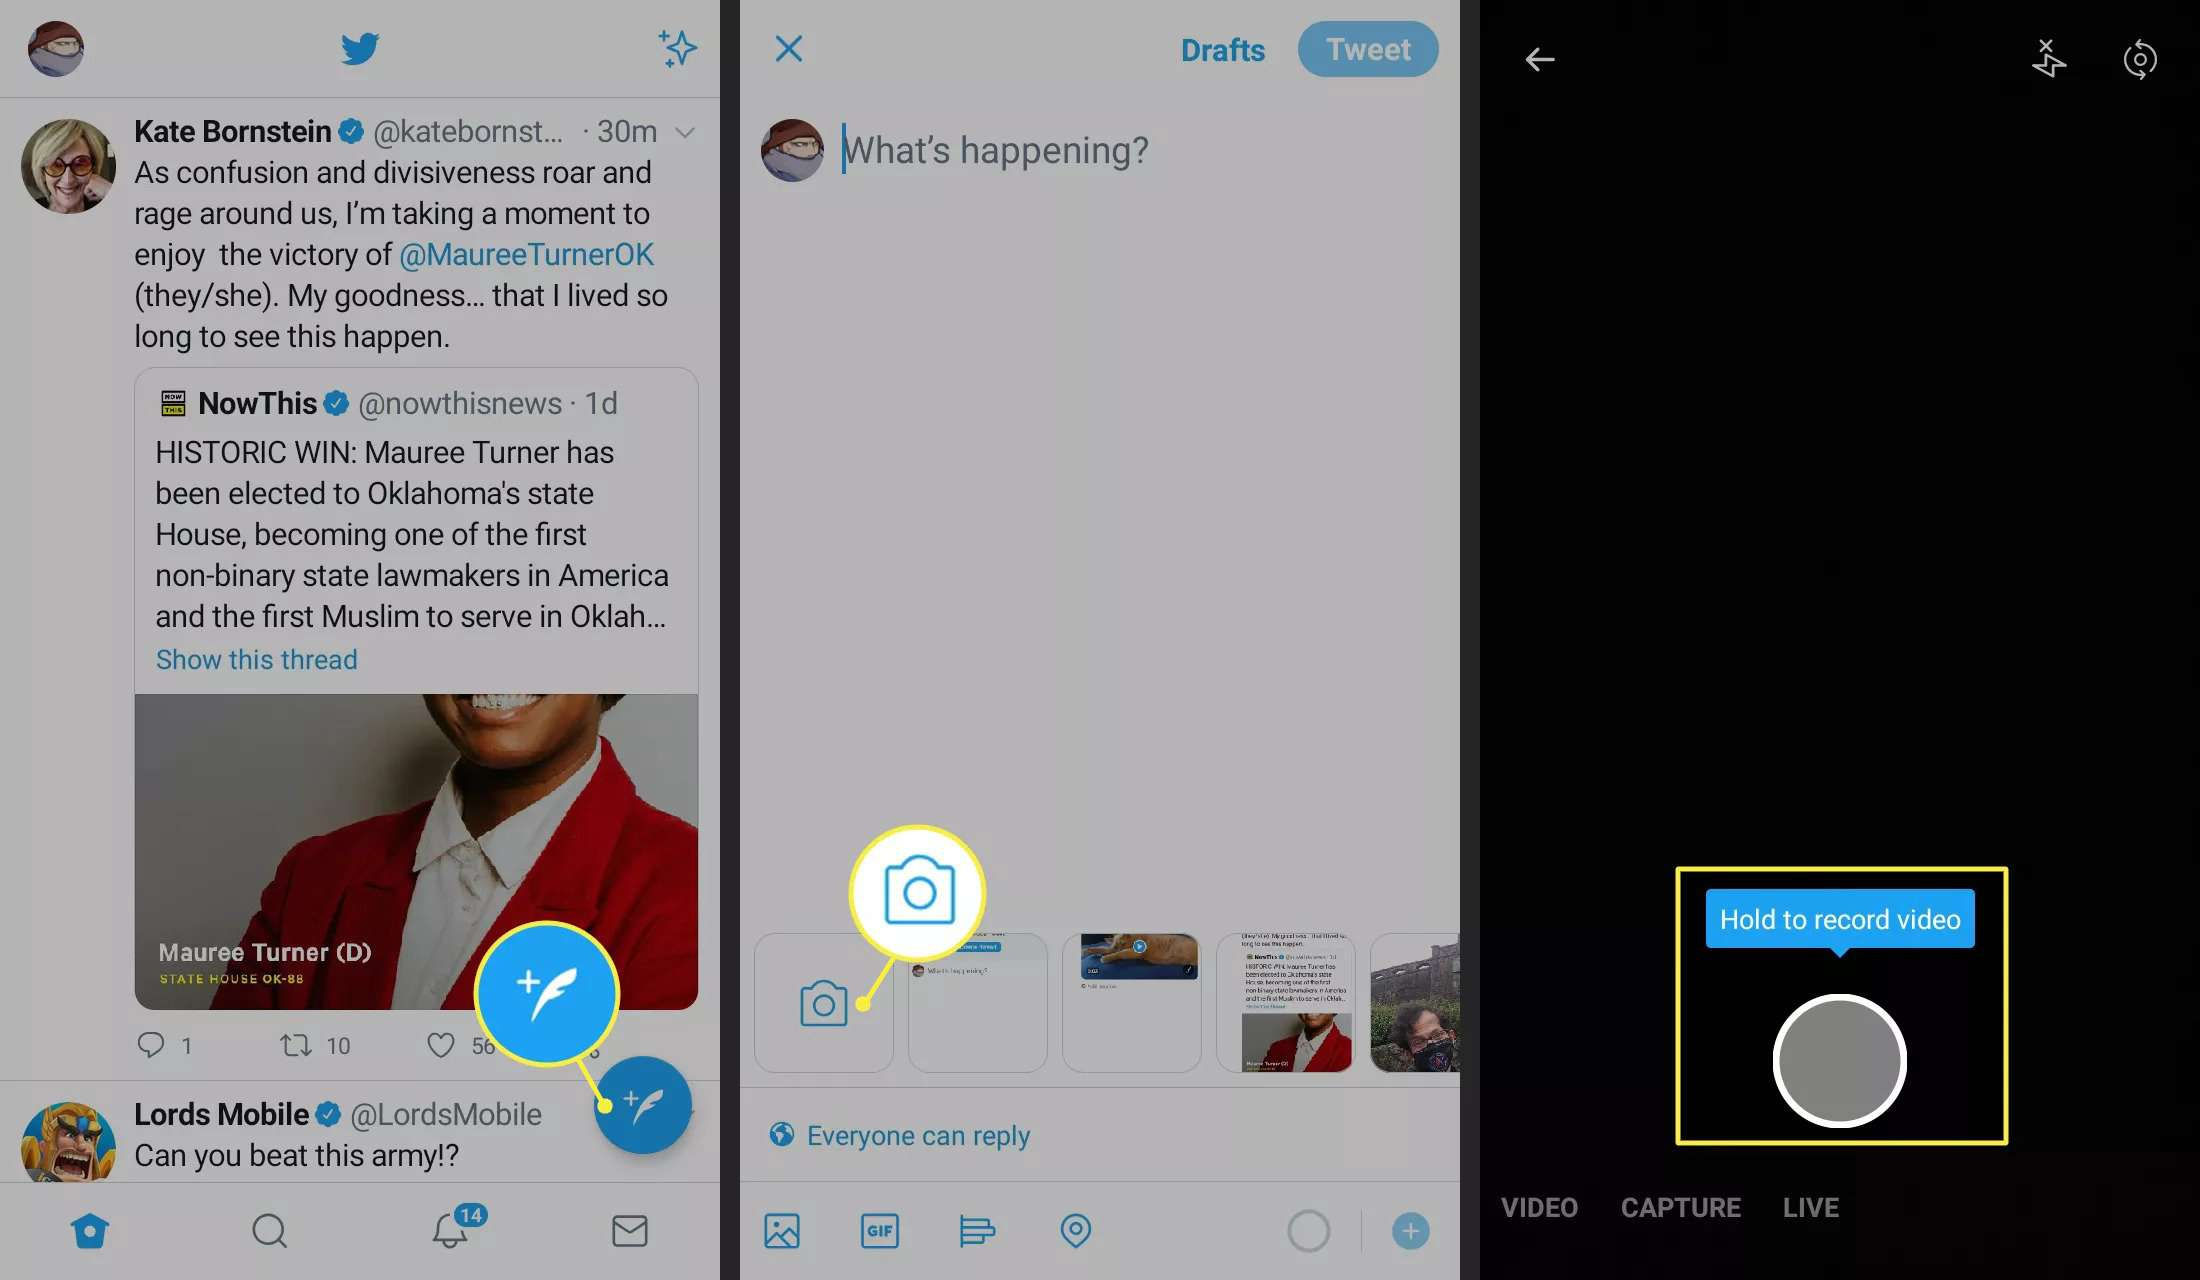 Compose Tweet, Camera, and Captrure icon on the Twitter app